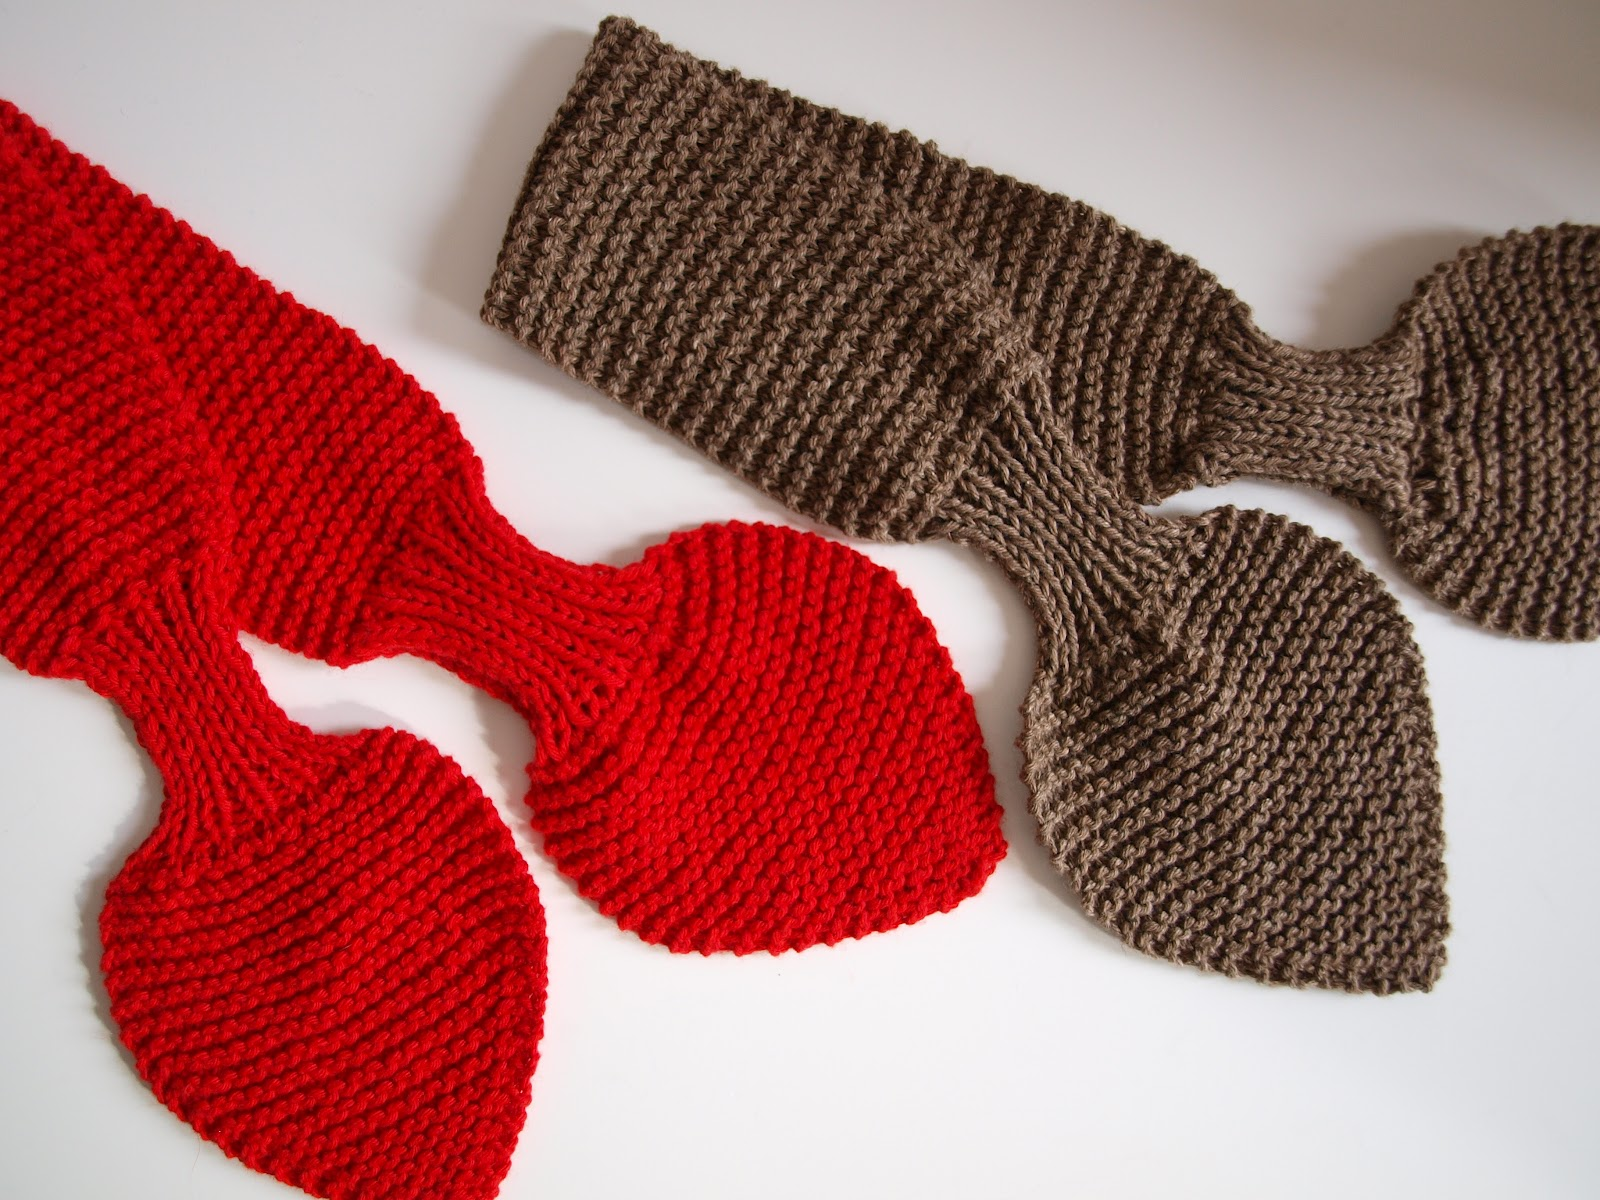 Crafted by Carly: Bow-knot Scarves